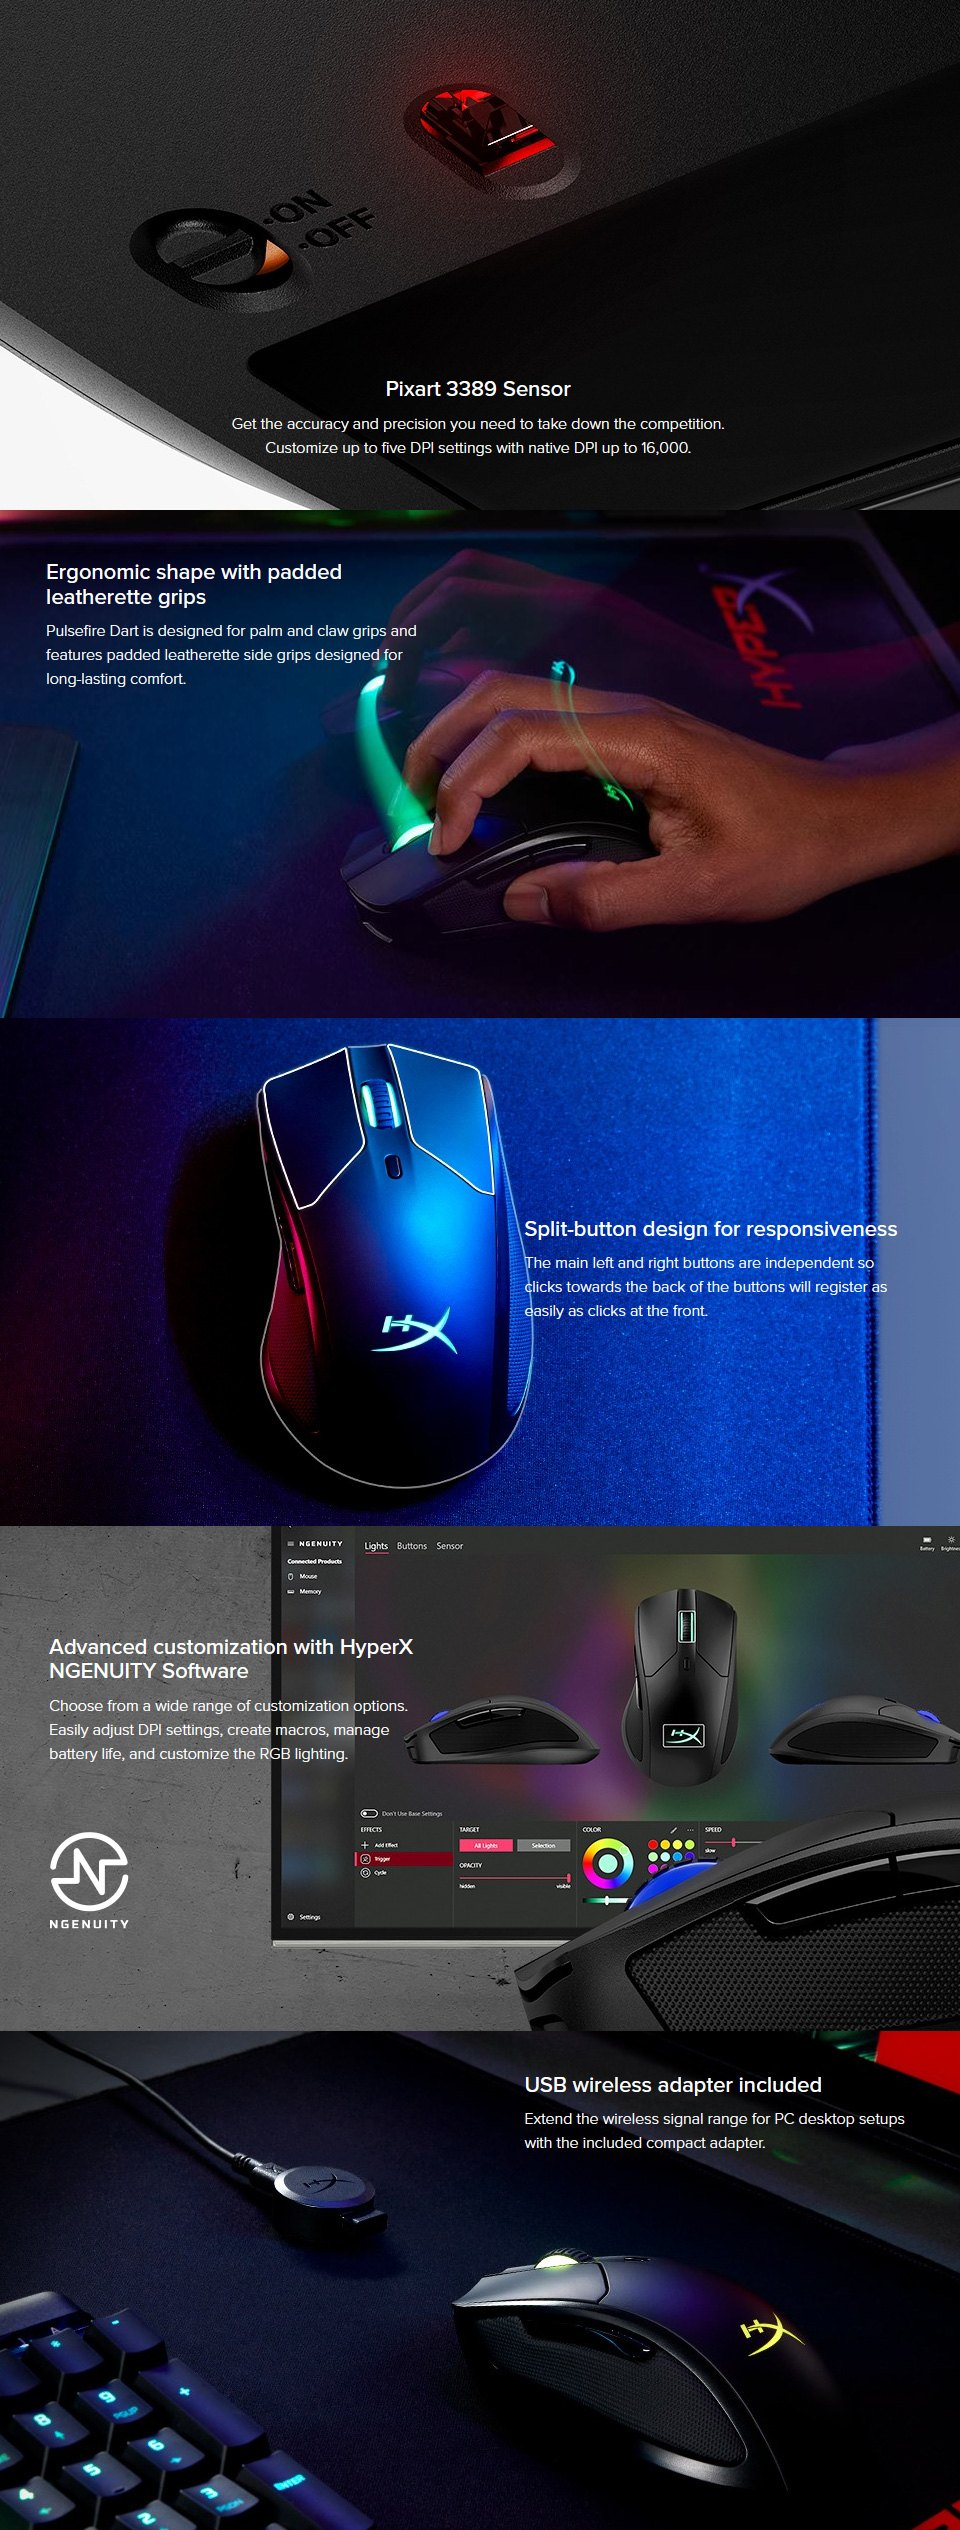 HyperX Pulsefire Dart RGB Wireless Mouse features 2